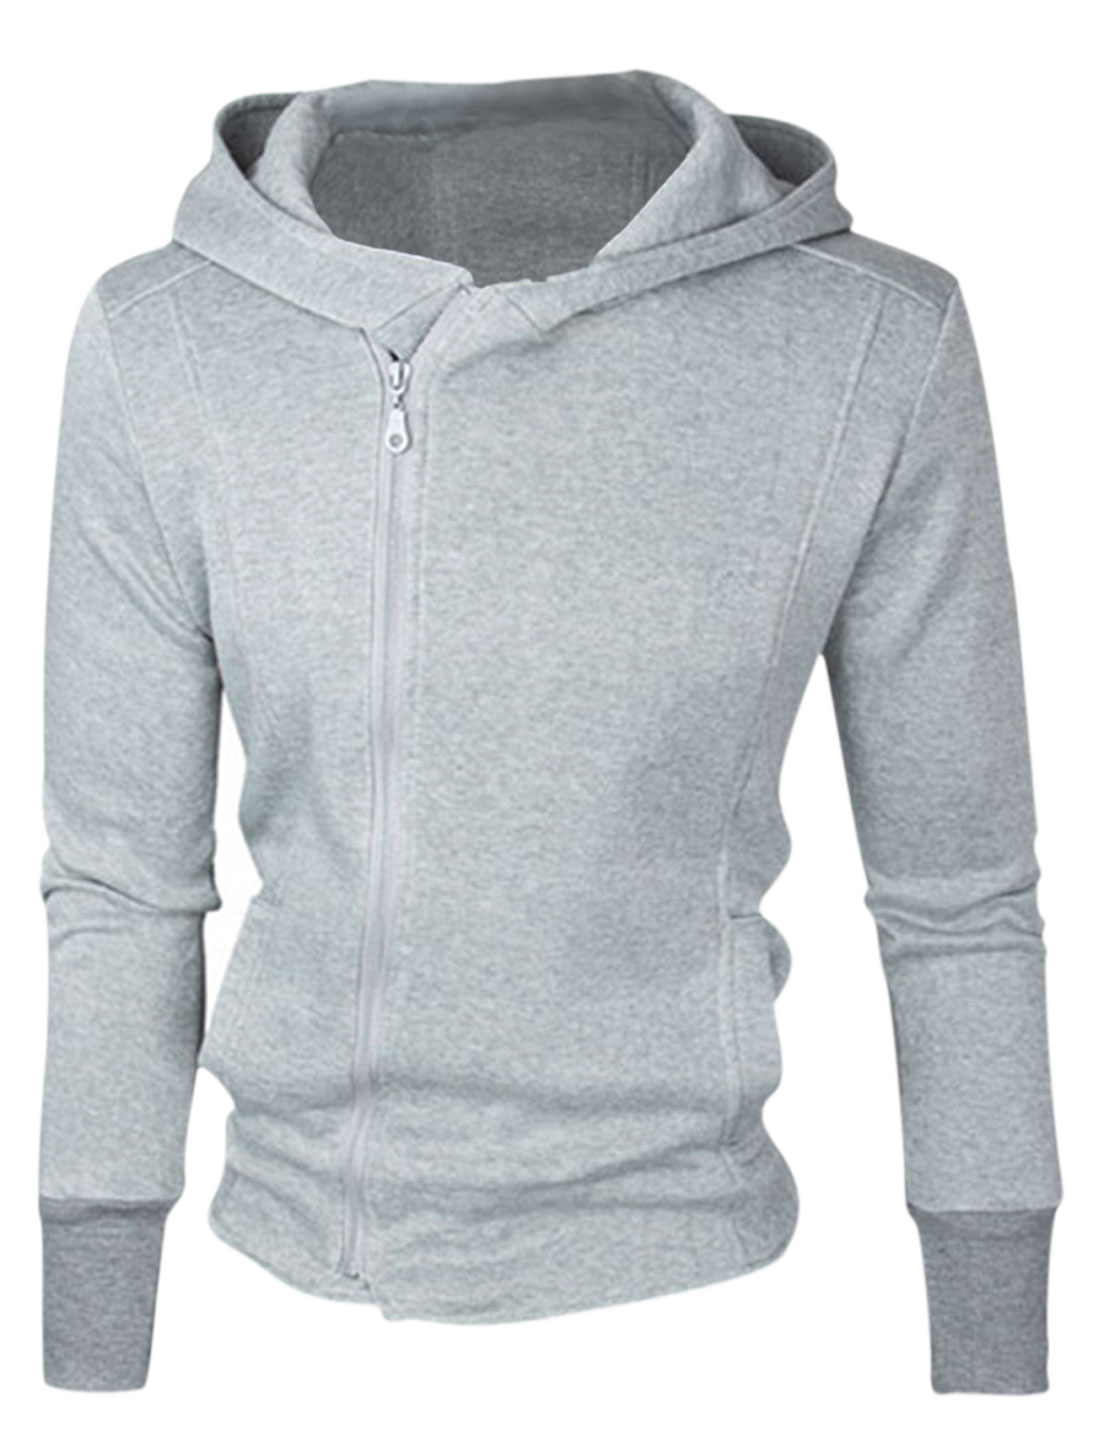 Men Light Gray Zip Fly Front Pockets Ribbed Cuffs Long Sleeves Hoodie Jacket M